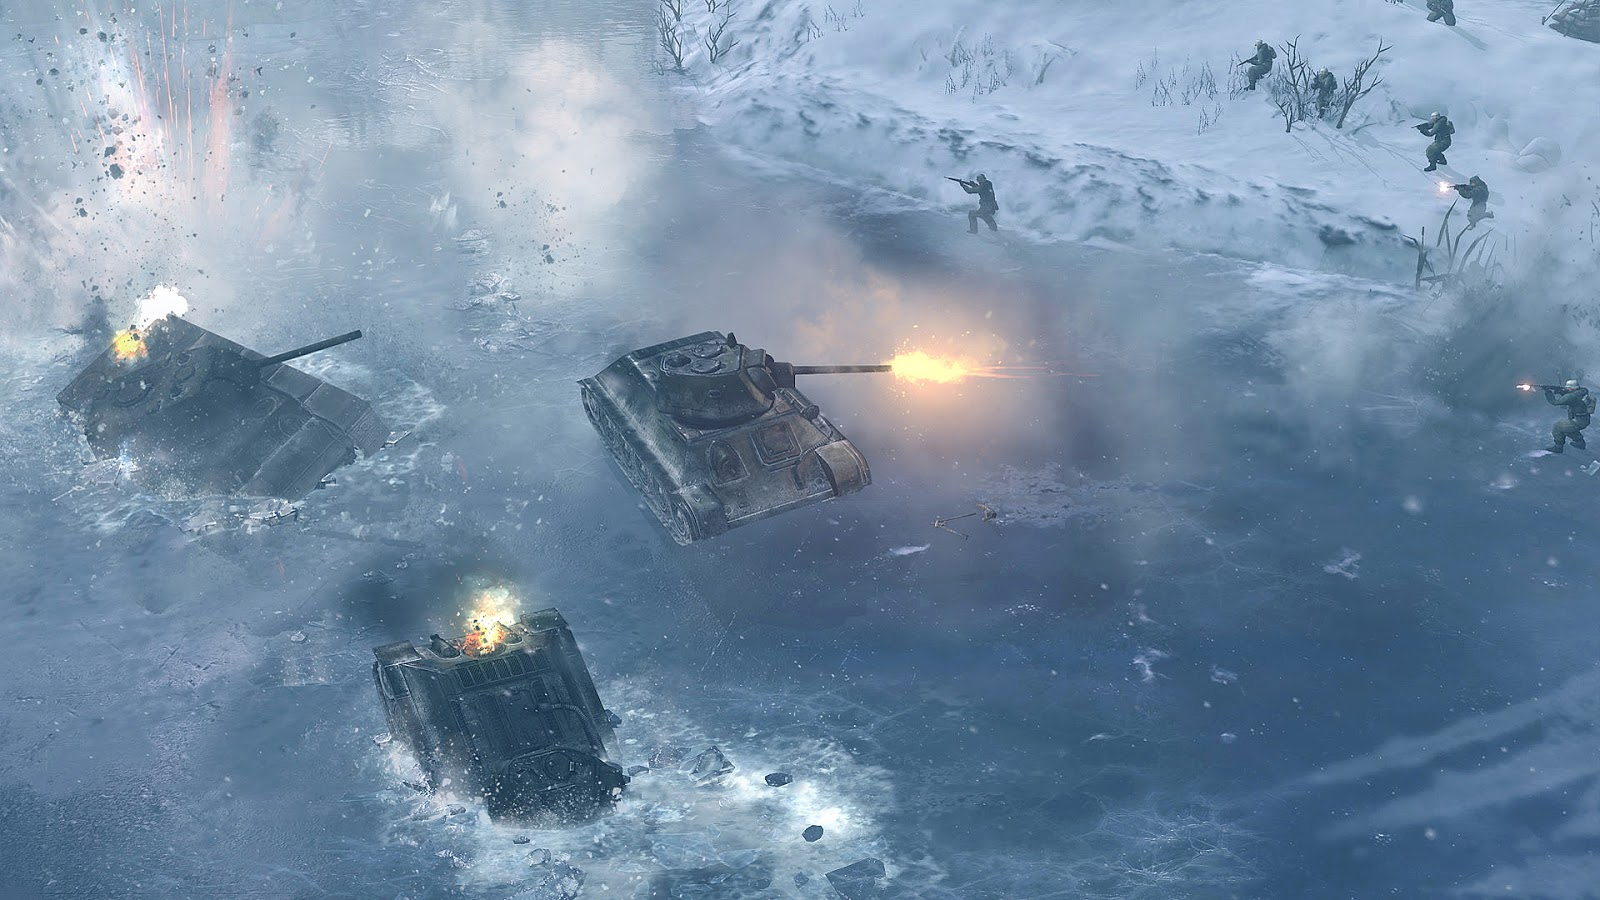 Company Of Heroes 2 Review We Know Gamers Gaming News Previews And Reviews